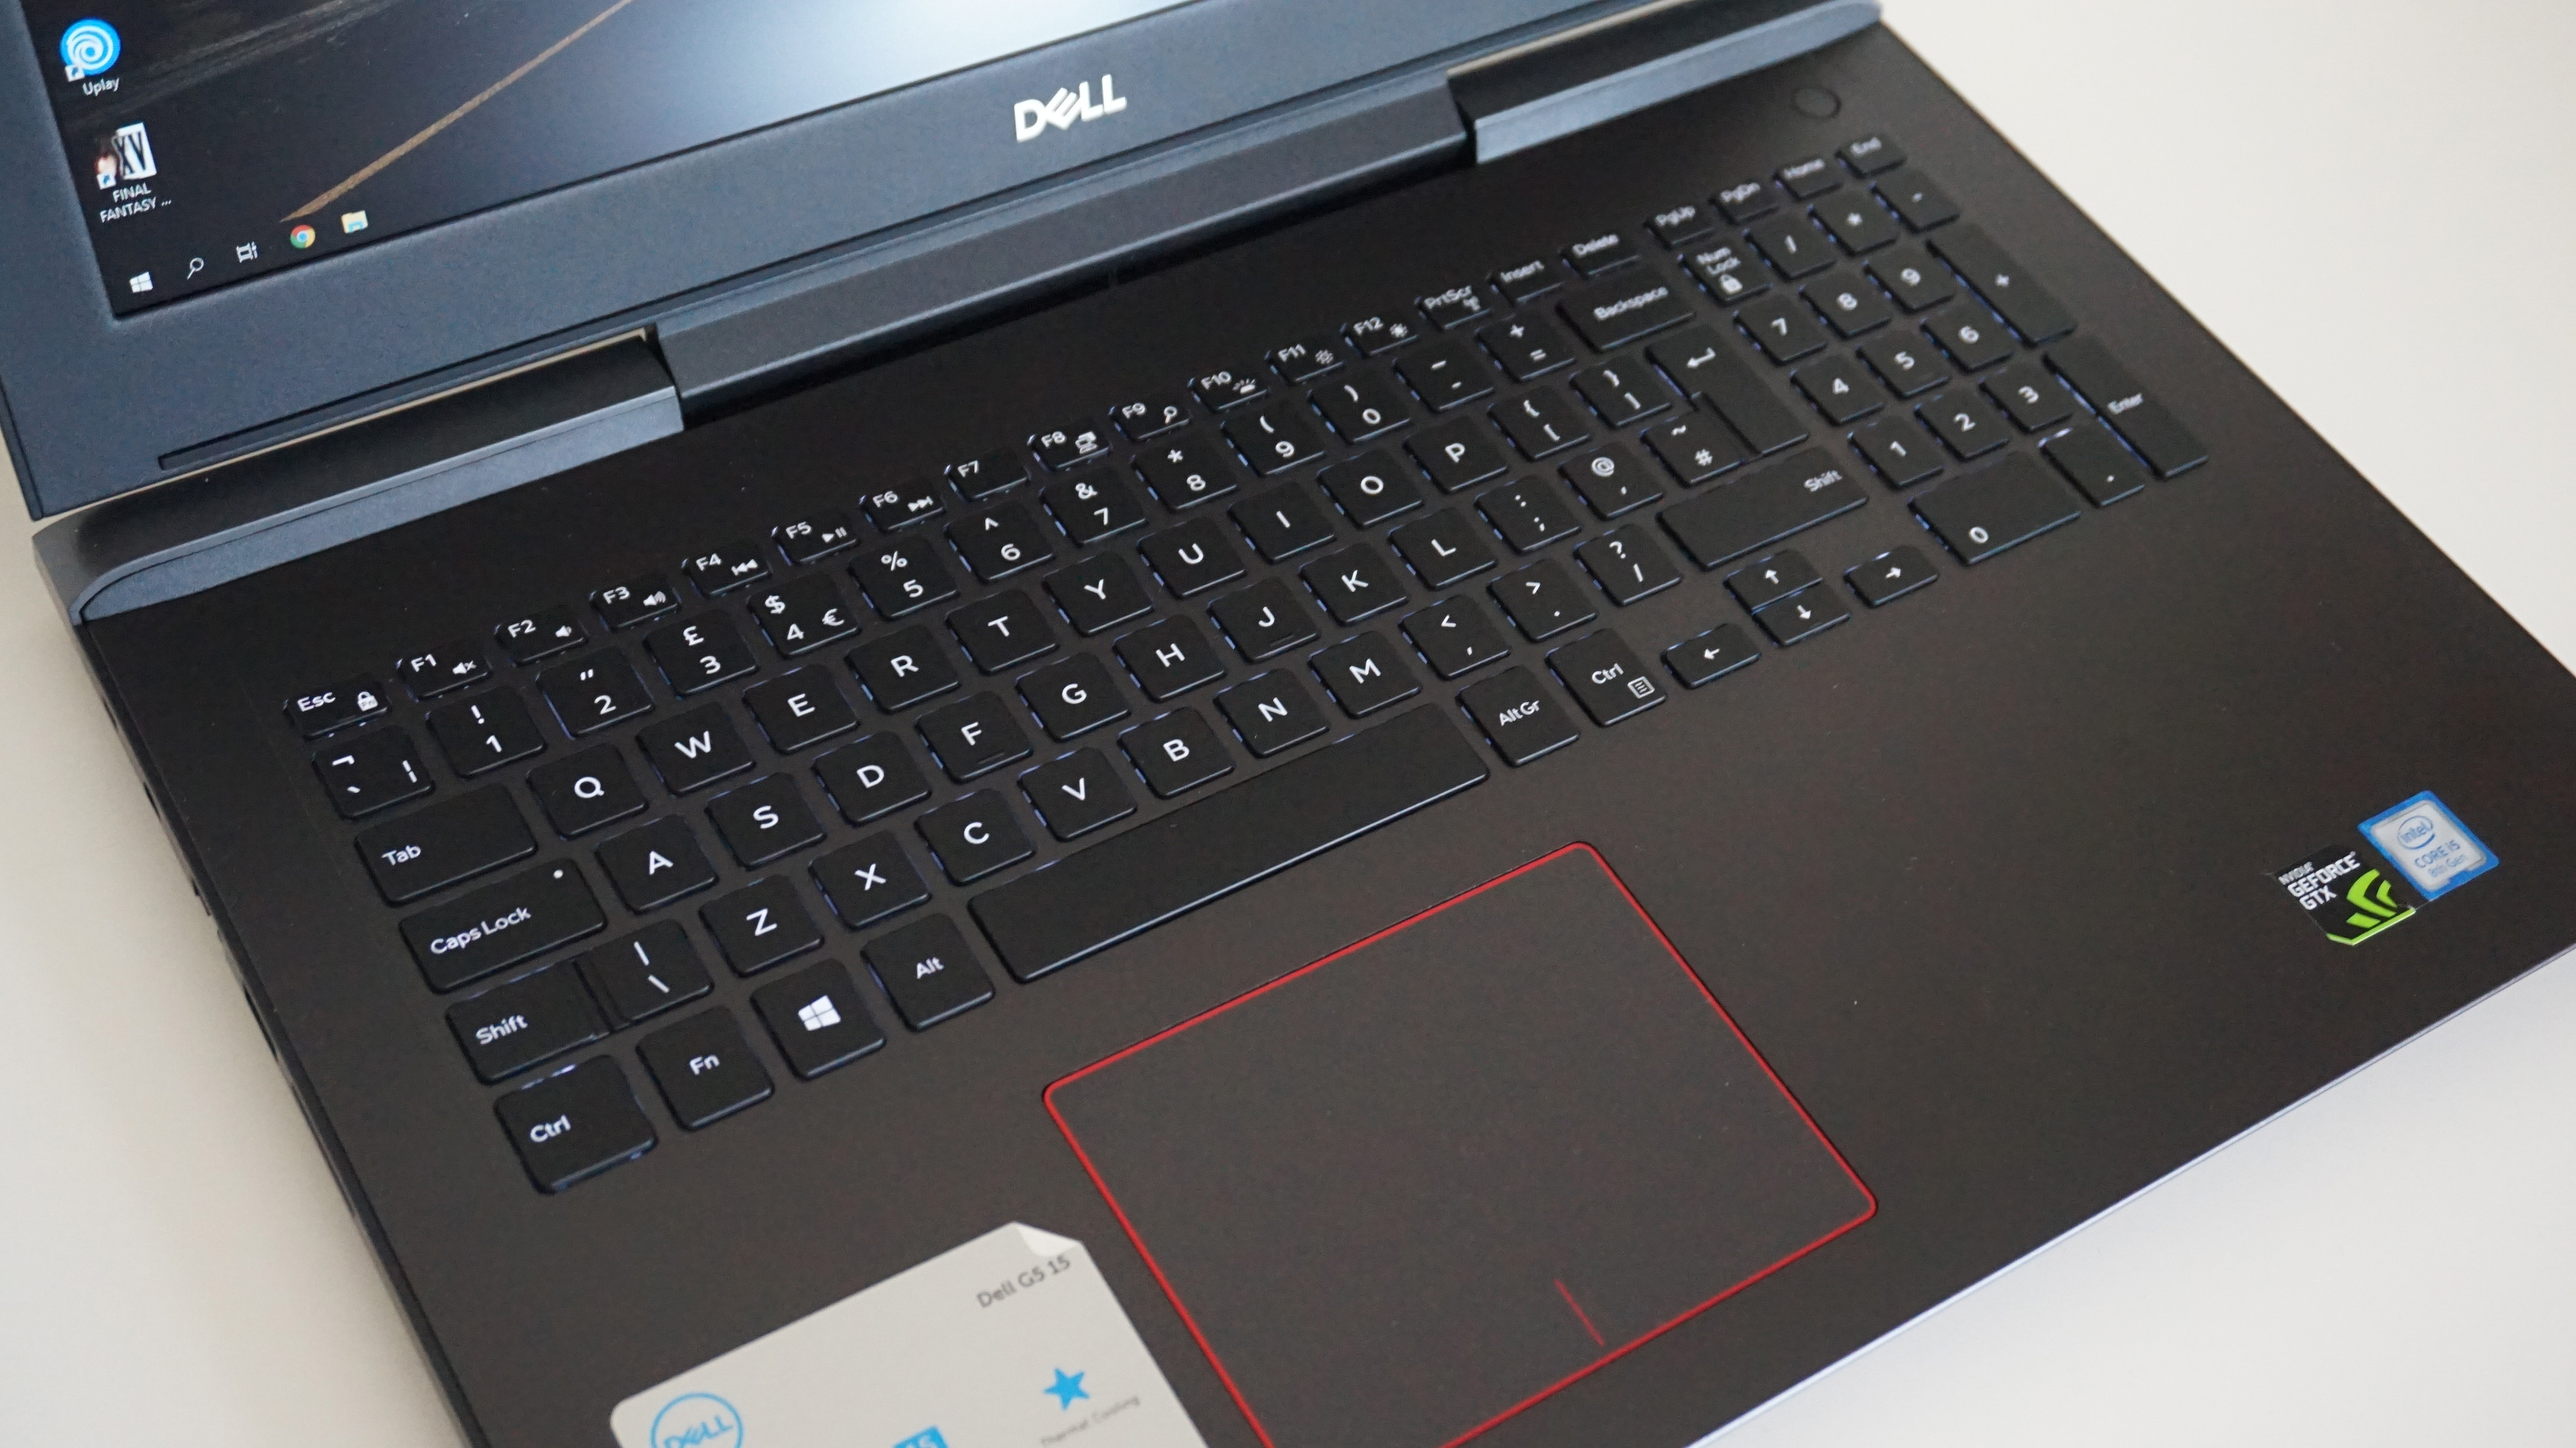 Dell Inspiron G5 15 Review Rock Paper Shotgun Love Test Game Circuit By 8 Led Keyboard